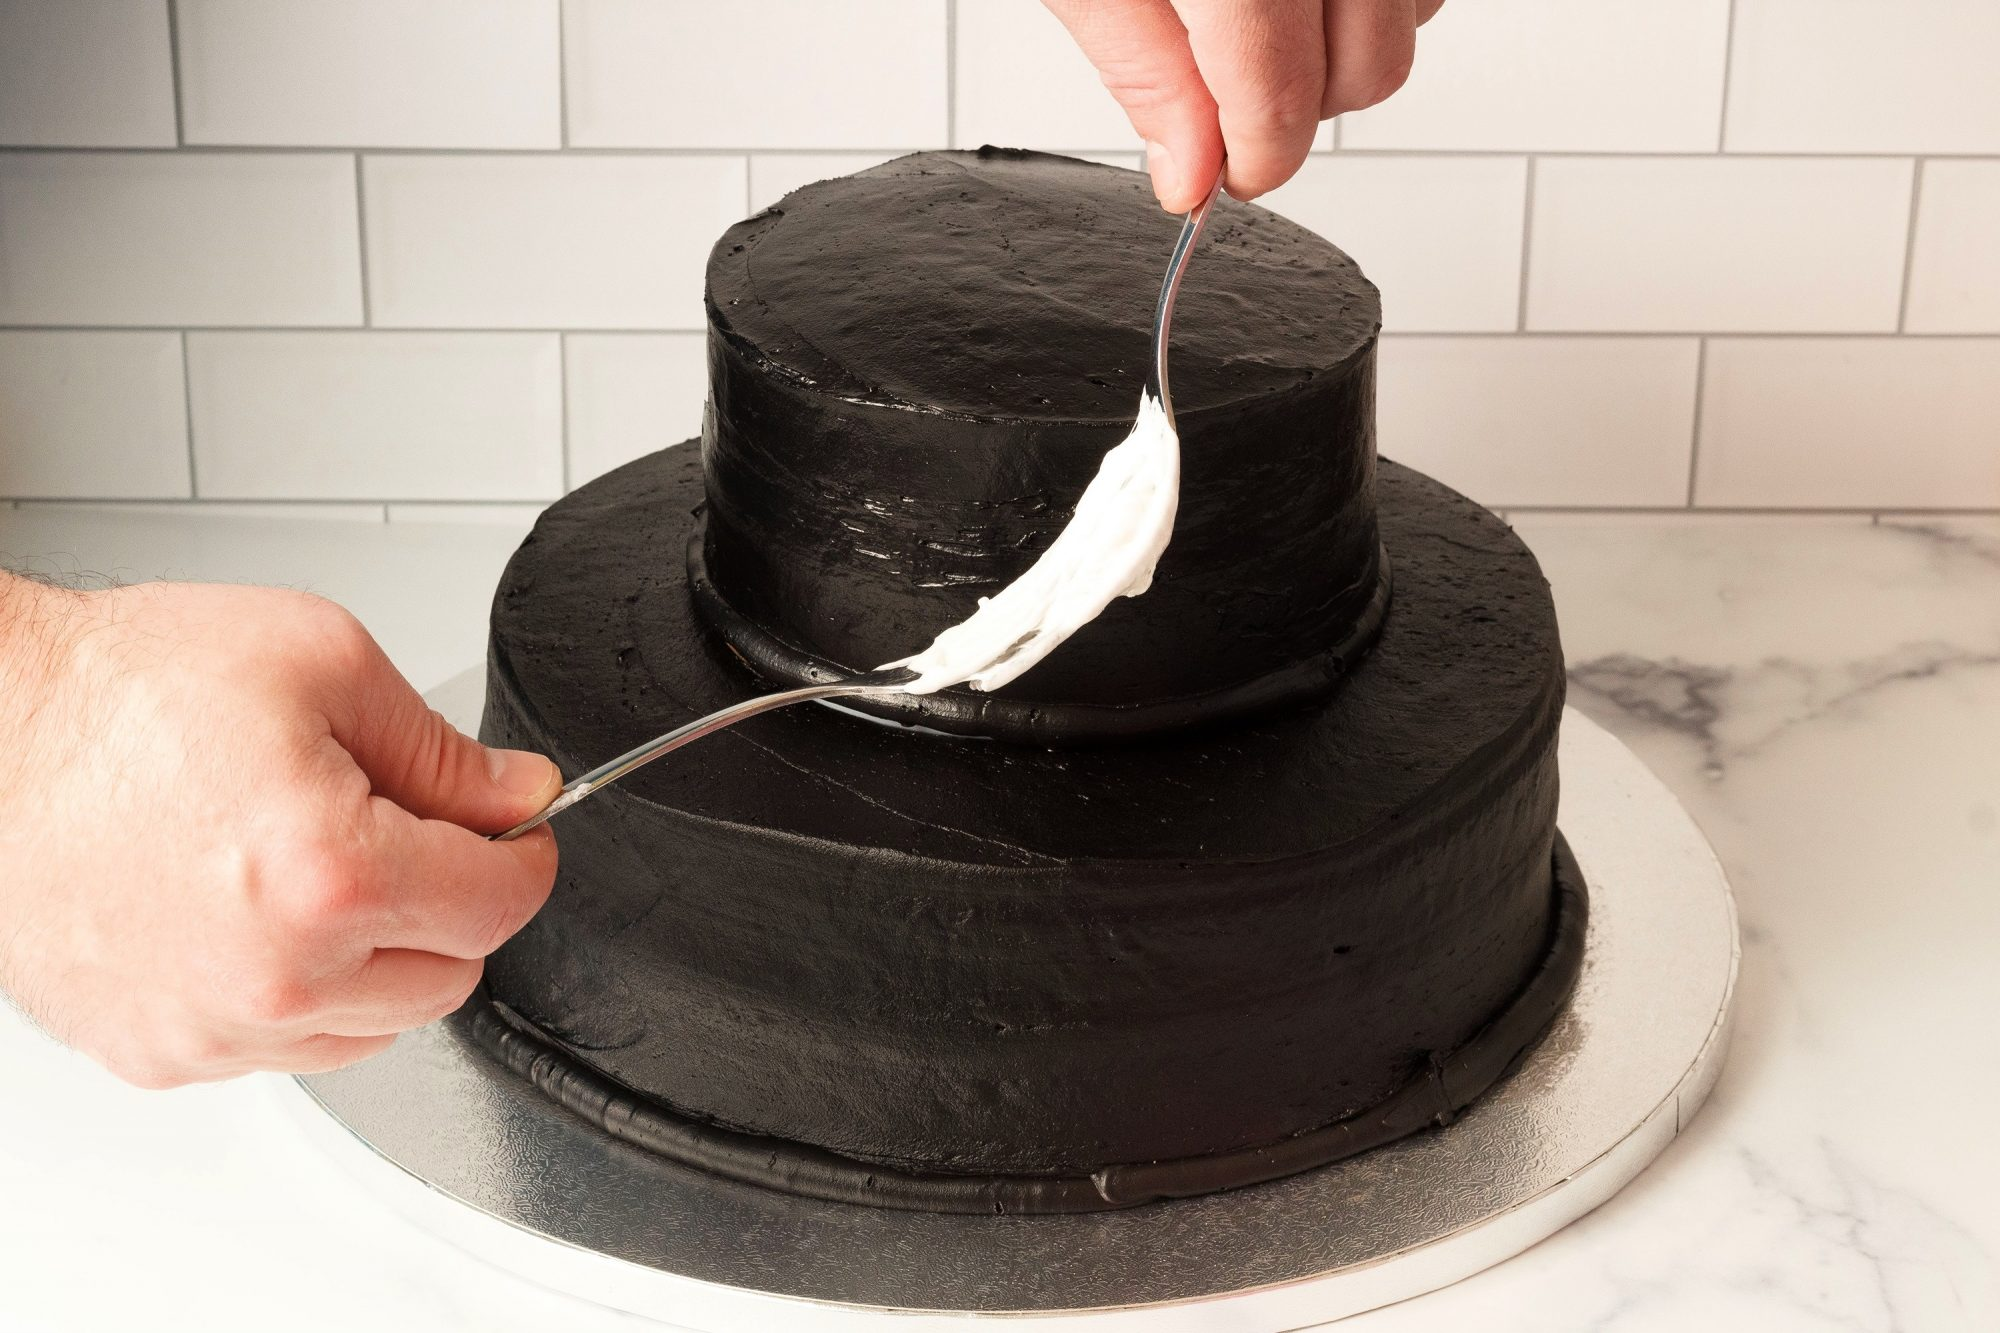 using a pair of forks to apply melted marshmallow onto a two-tiered dark chocolate cake to form a spiderweb decorations